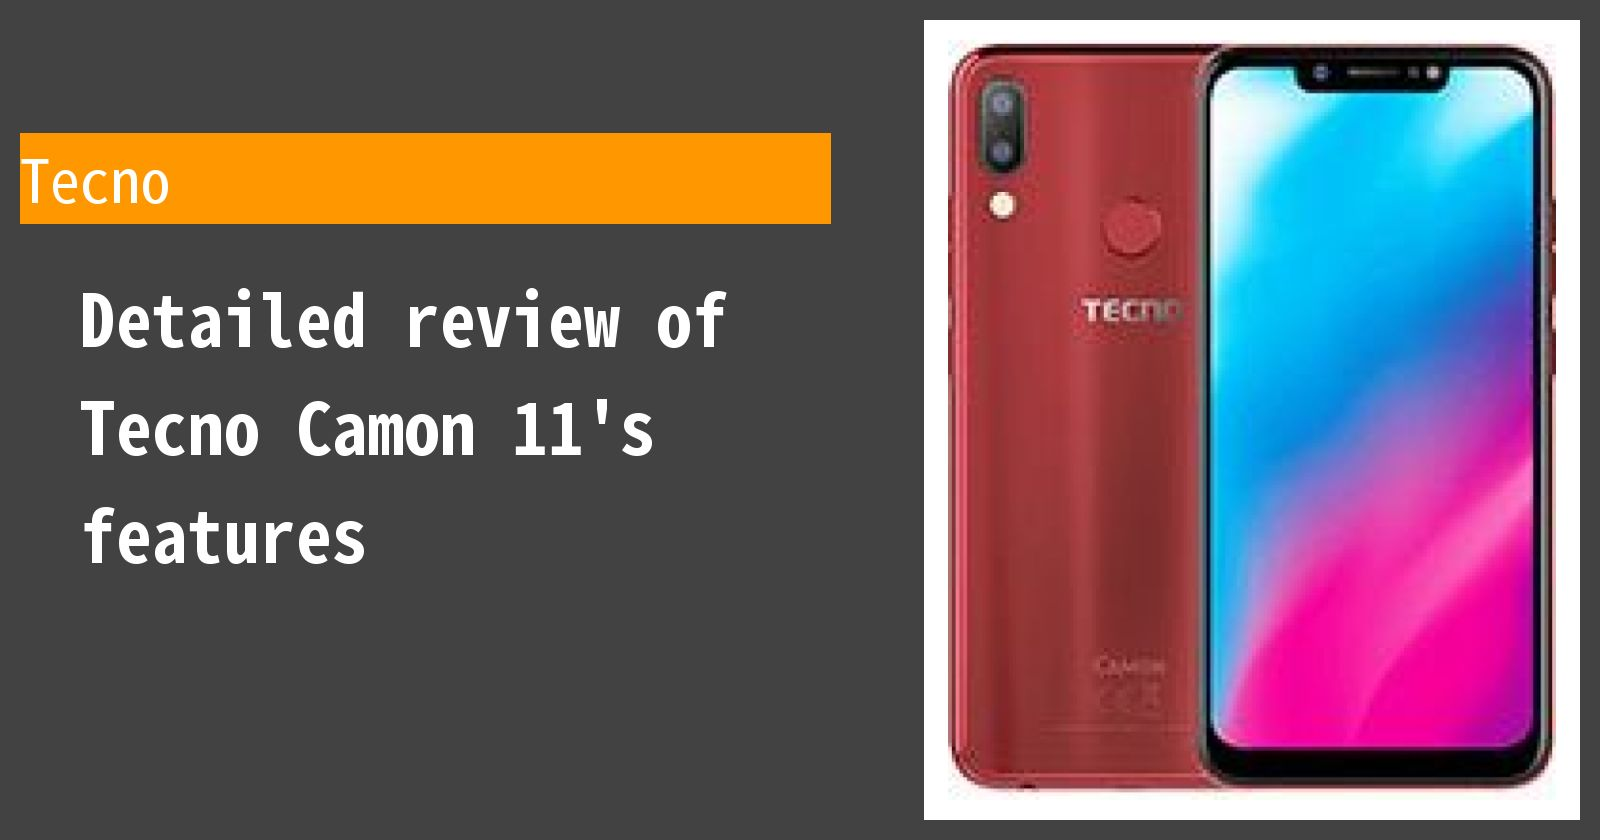 The Tecno Camon 11 review  Summary of specifications and performance